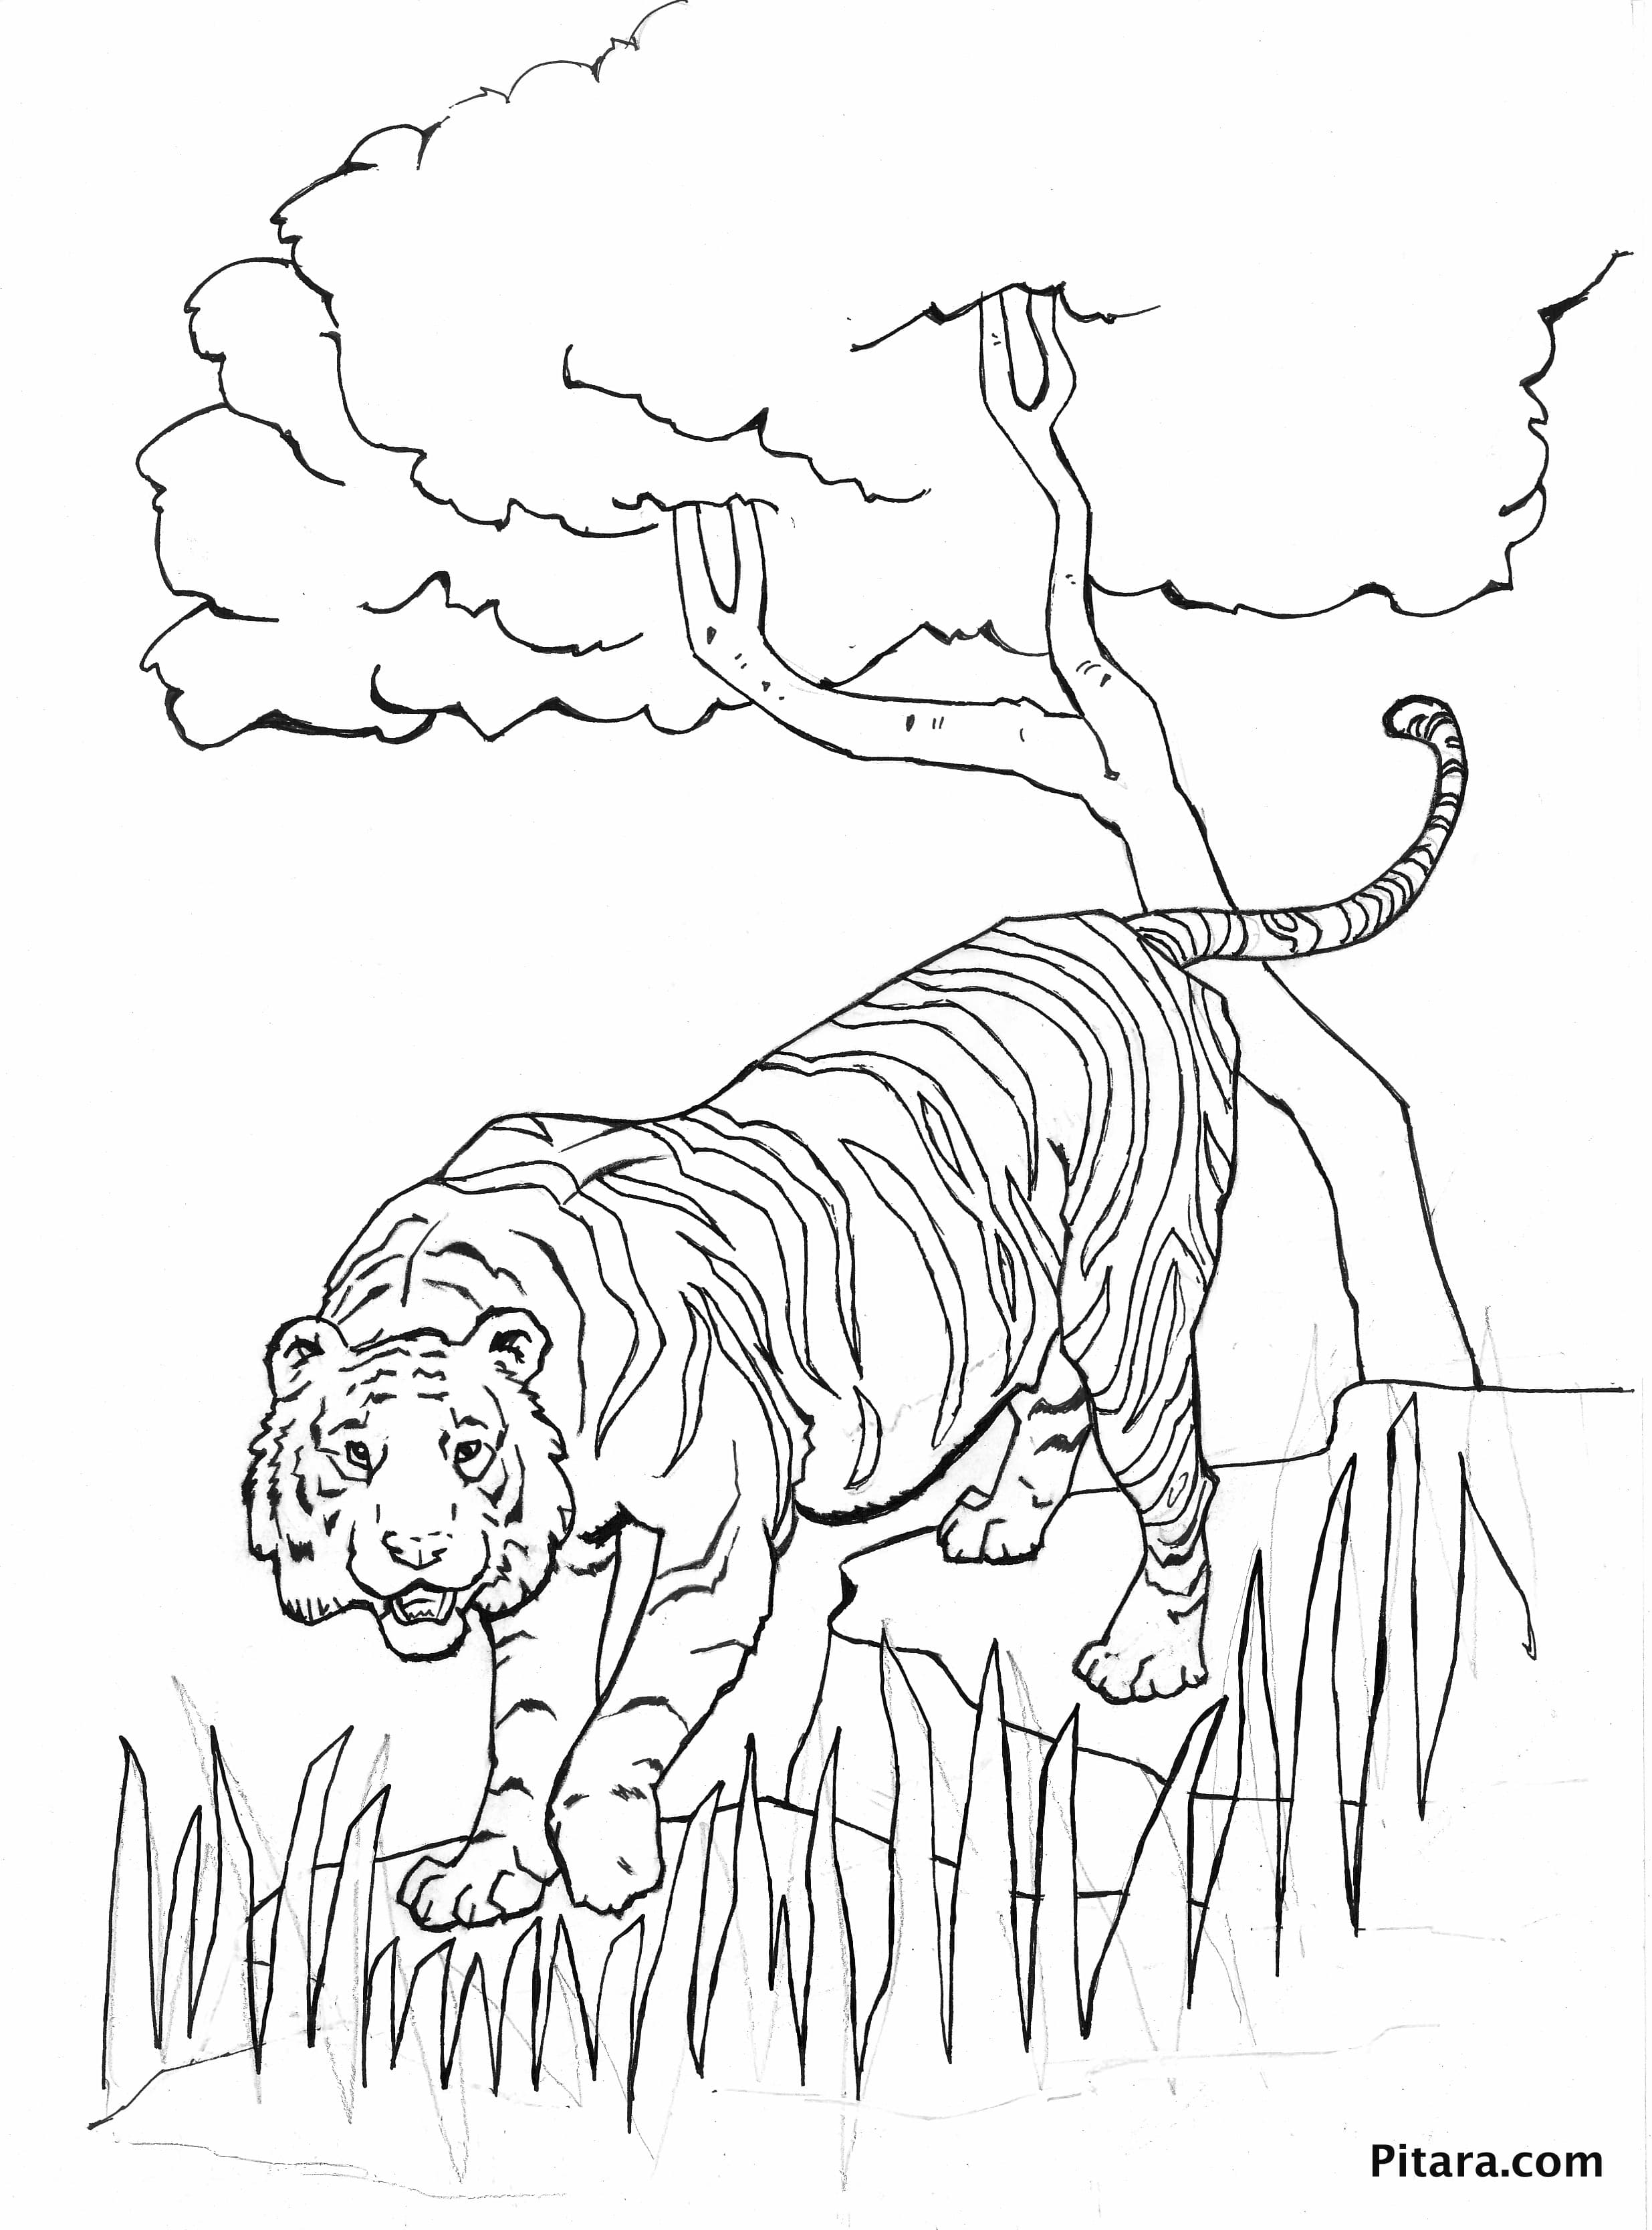 tiger coloring games tigers to download tigers kids coloring pages tiger games coloring